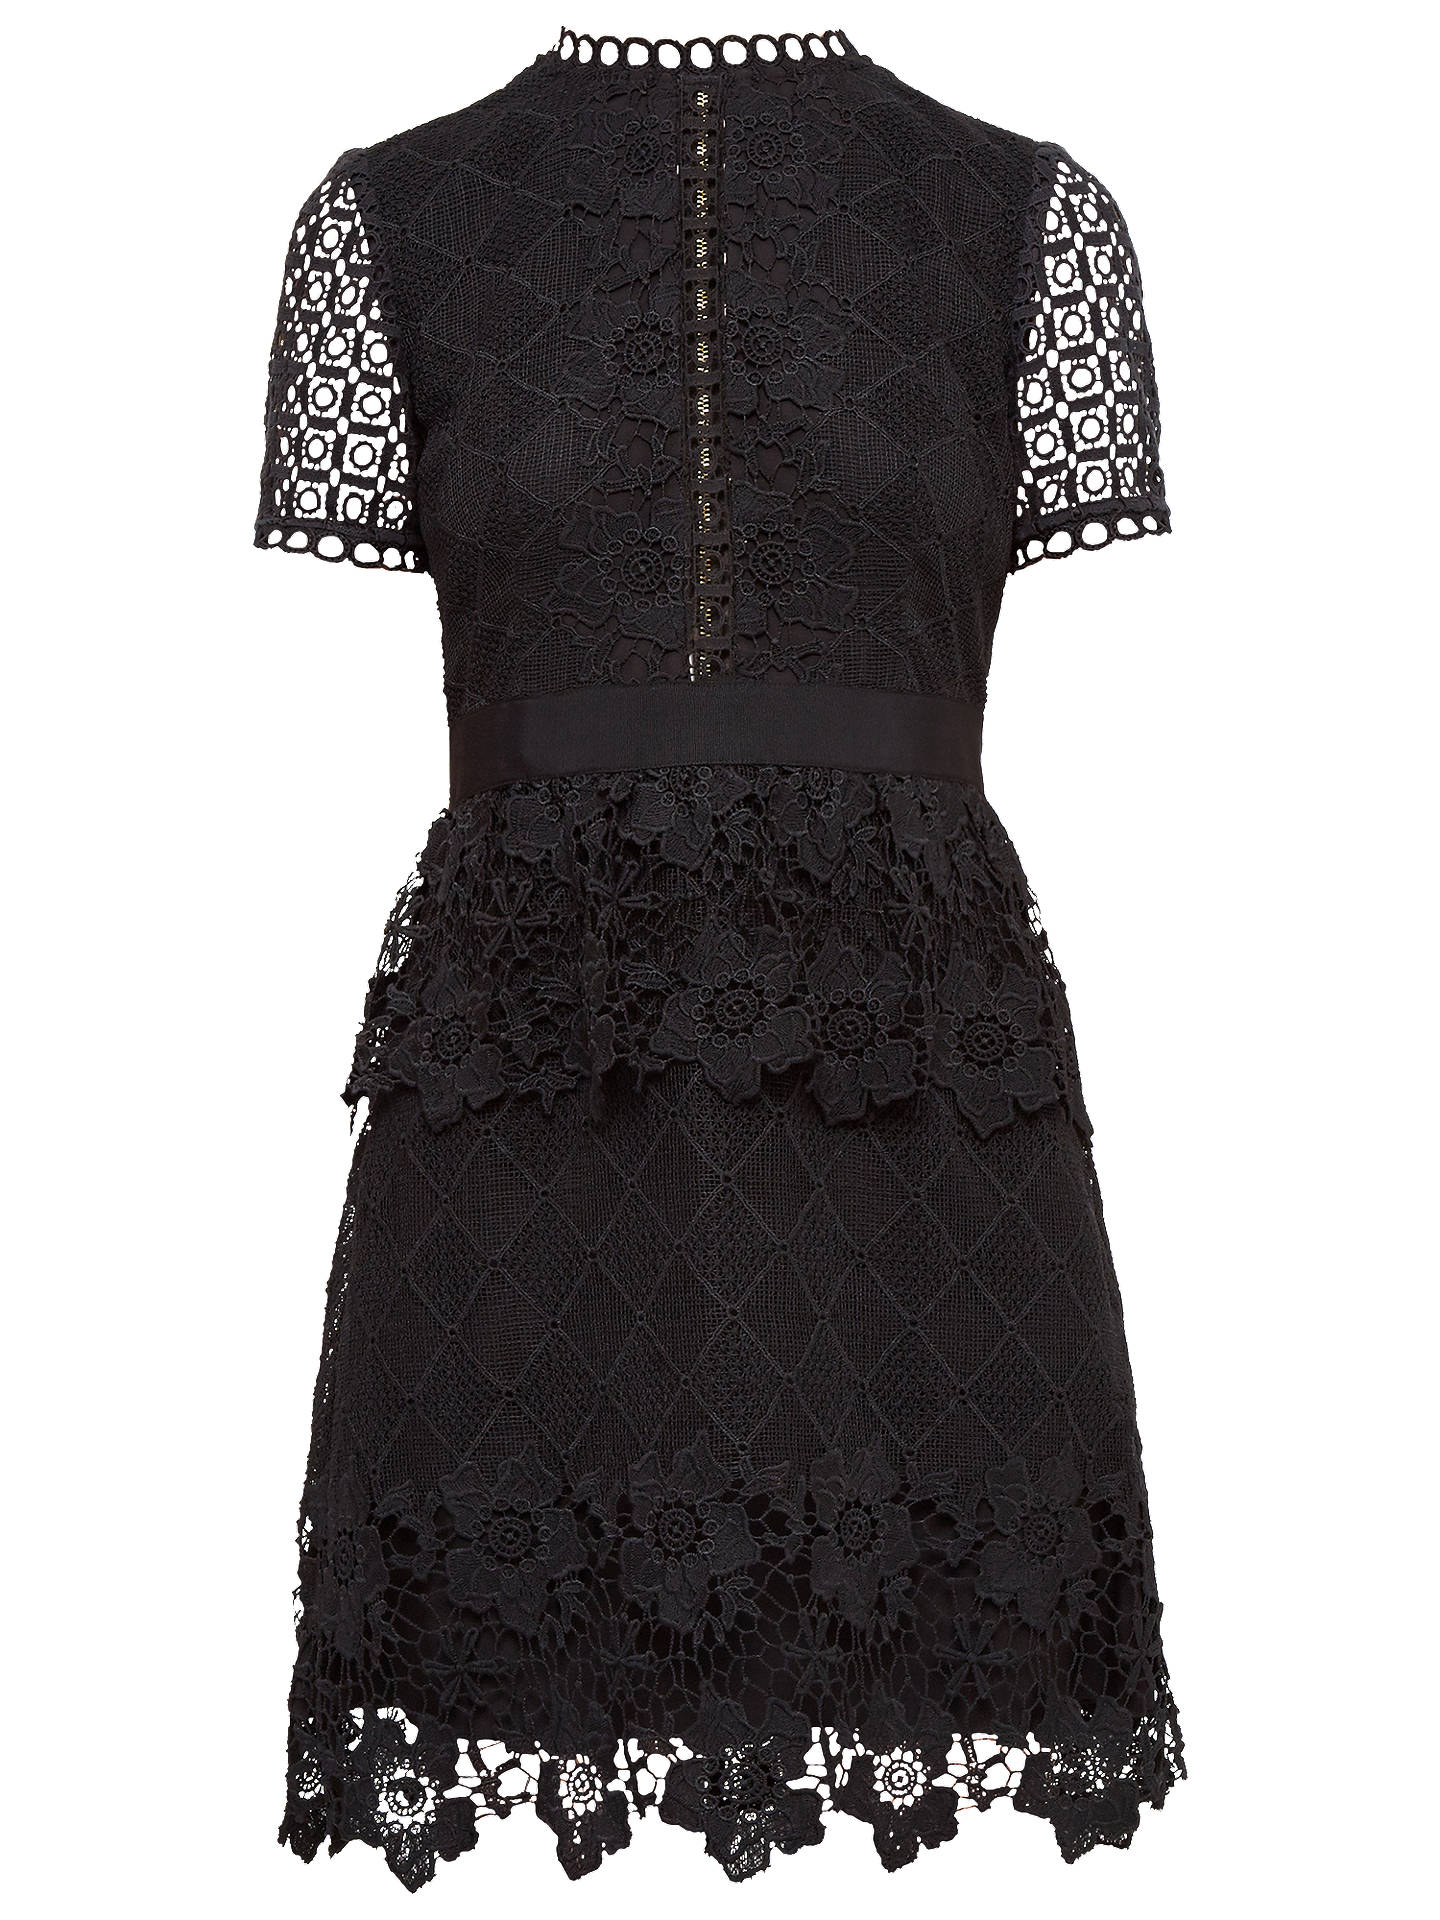 Ted Baker Black Layered Lace Dress Little Black Dress